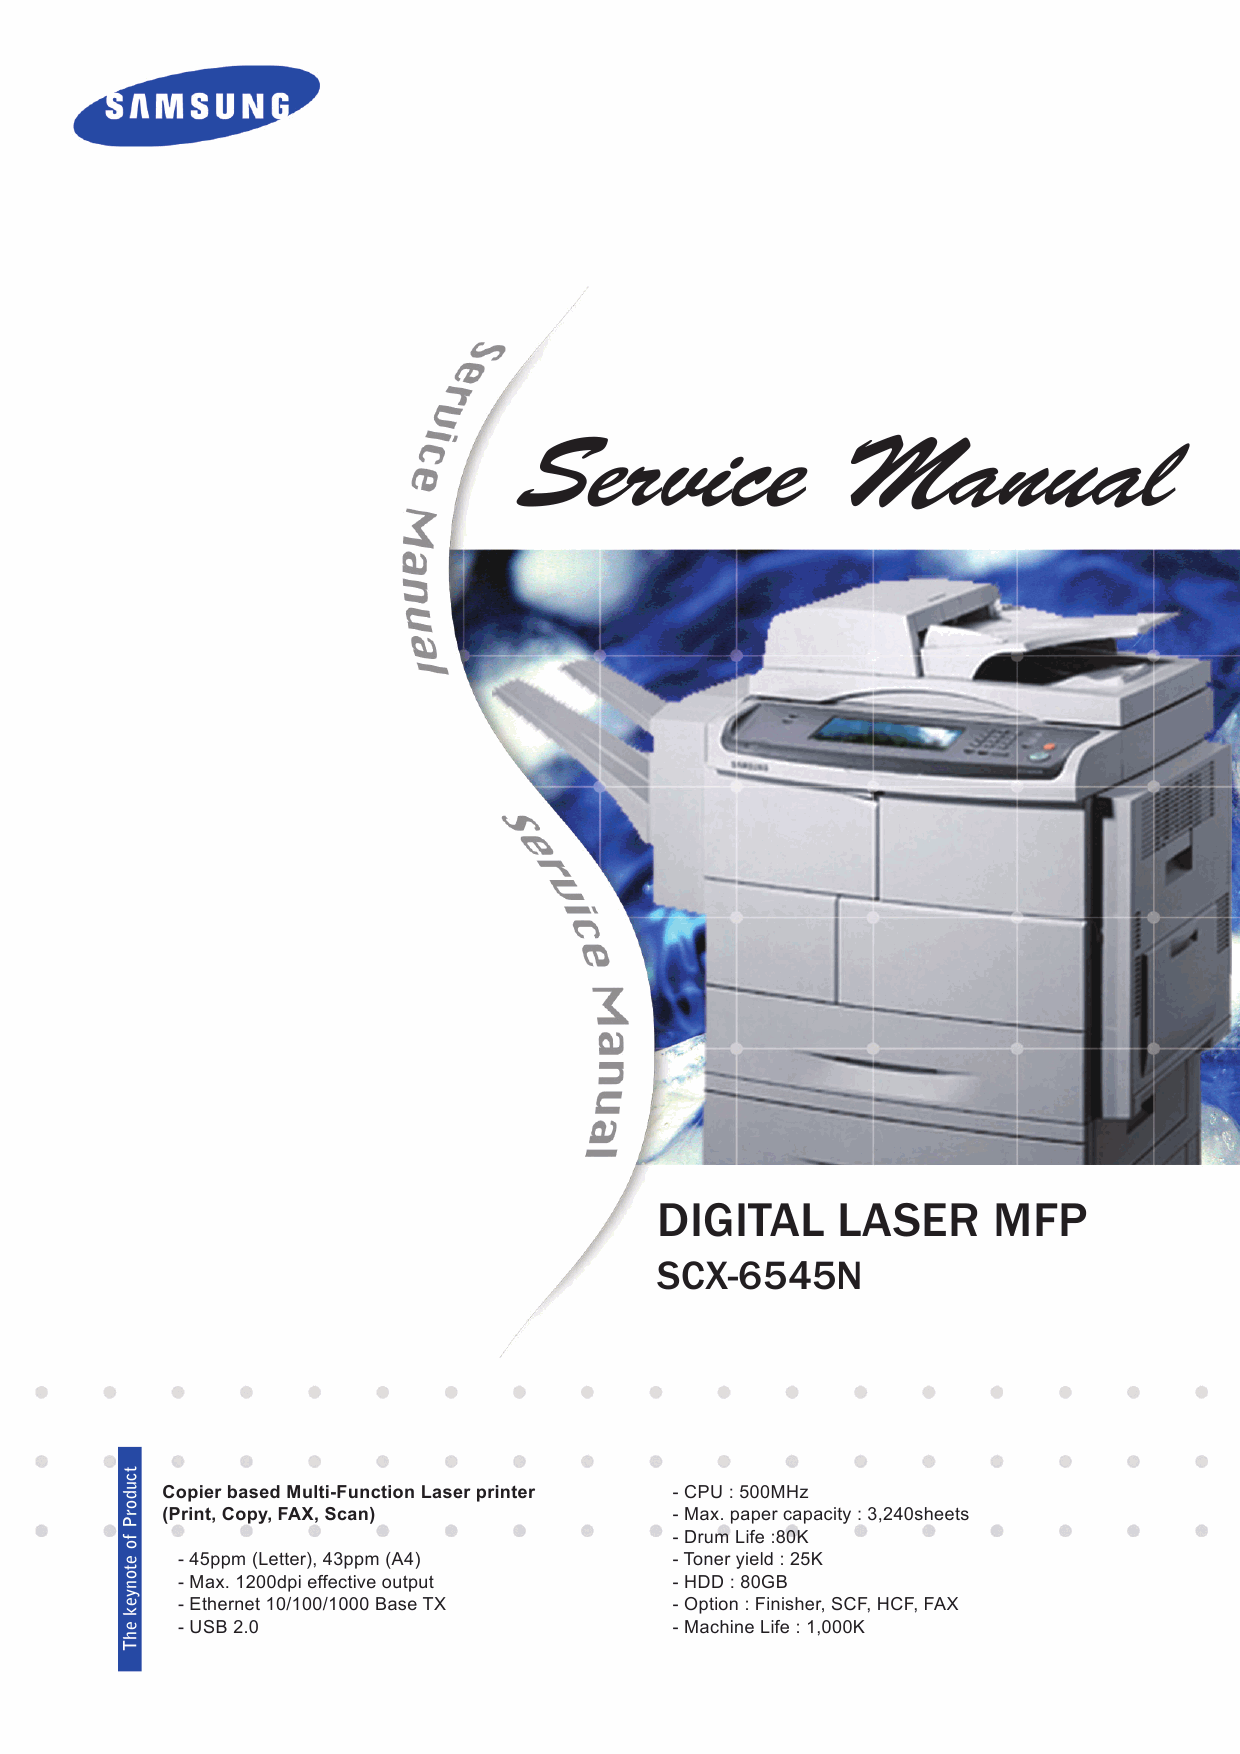 Samsung Digital-Laser-MFP SCX-6545N Parts and Service Manual-1